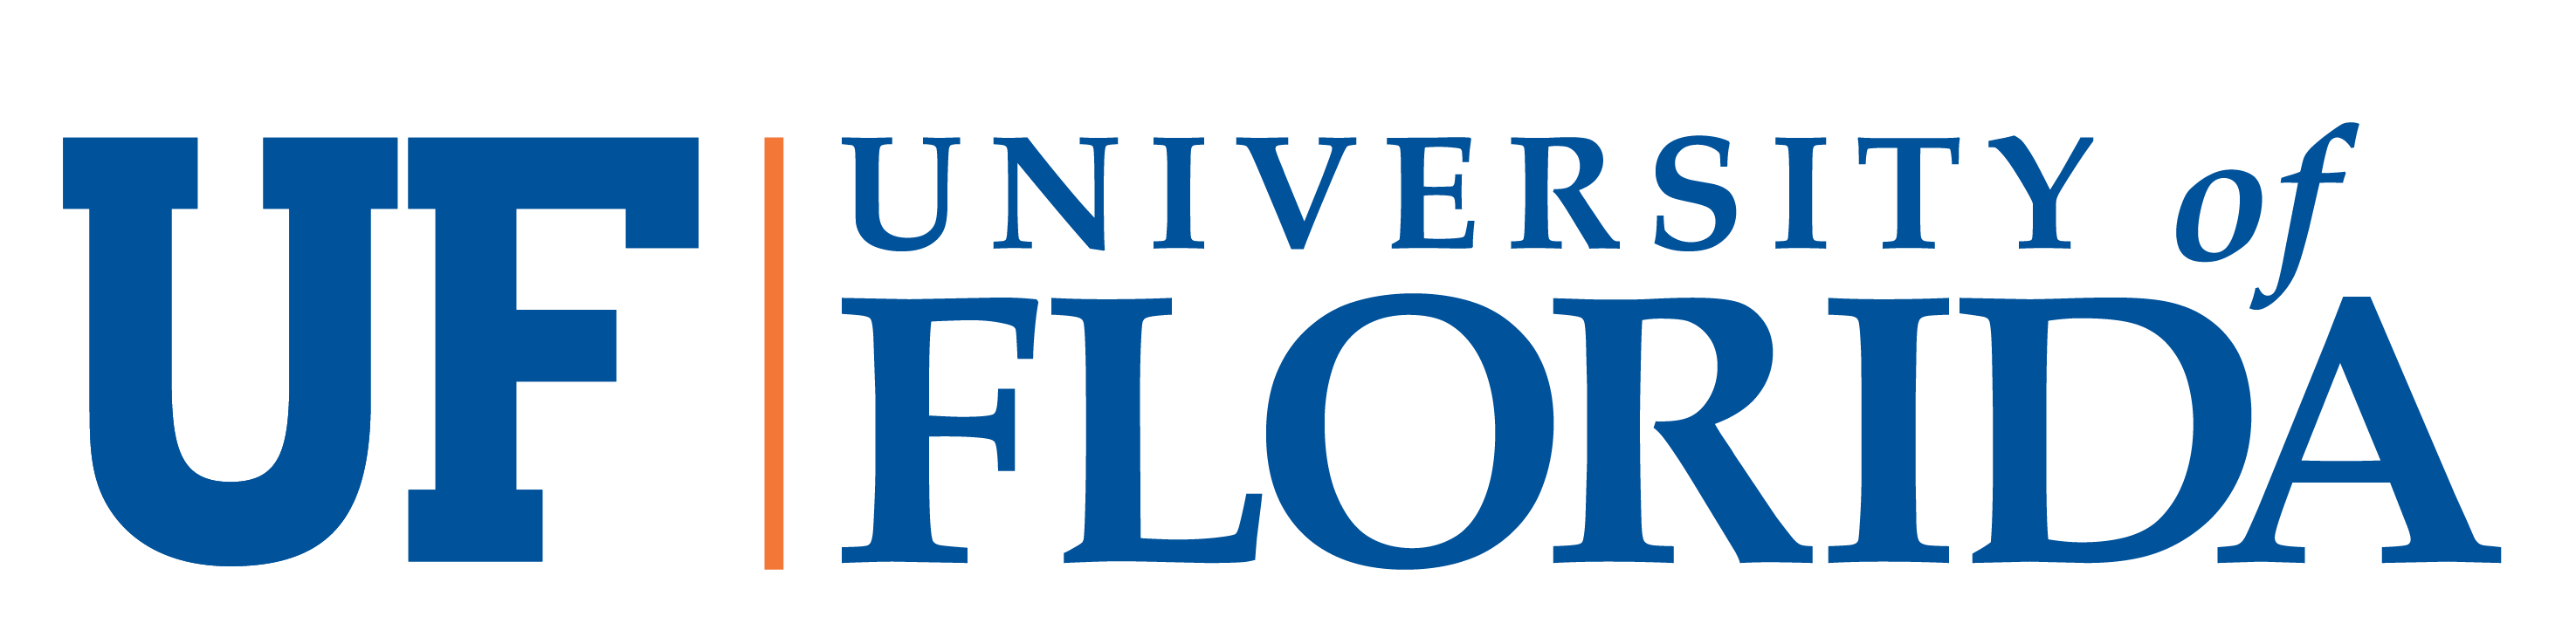 Anita zucker center for. University of florida logo png clipart black and white